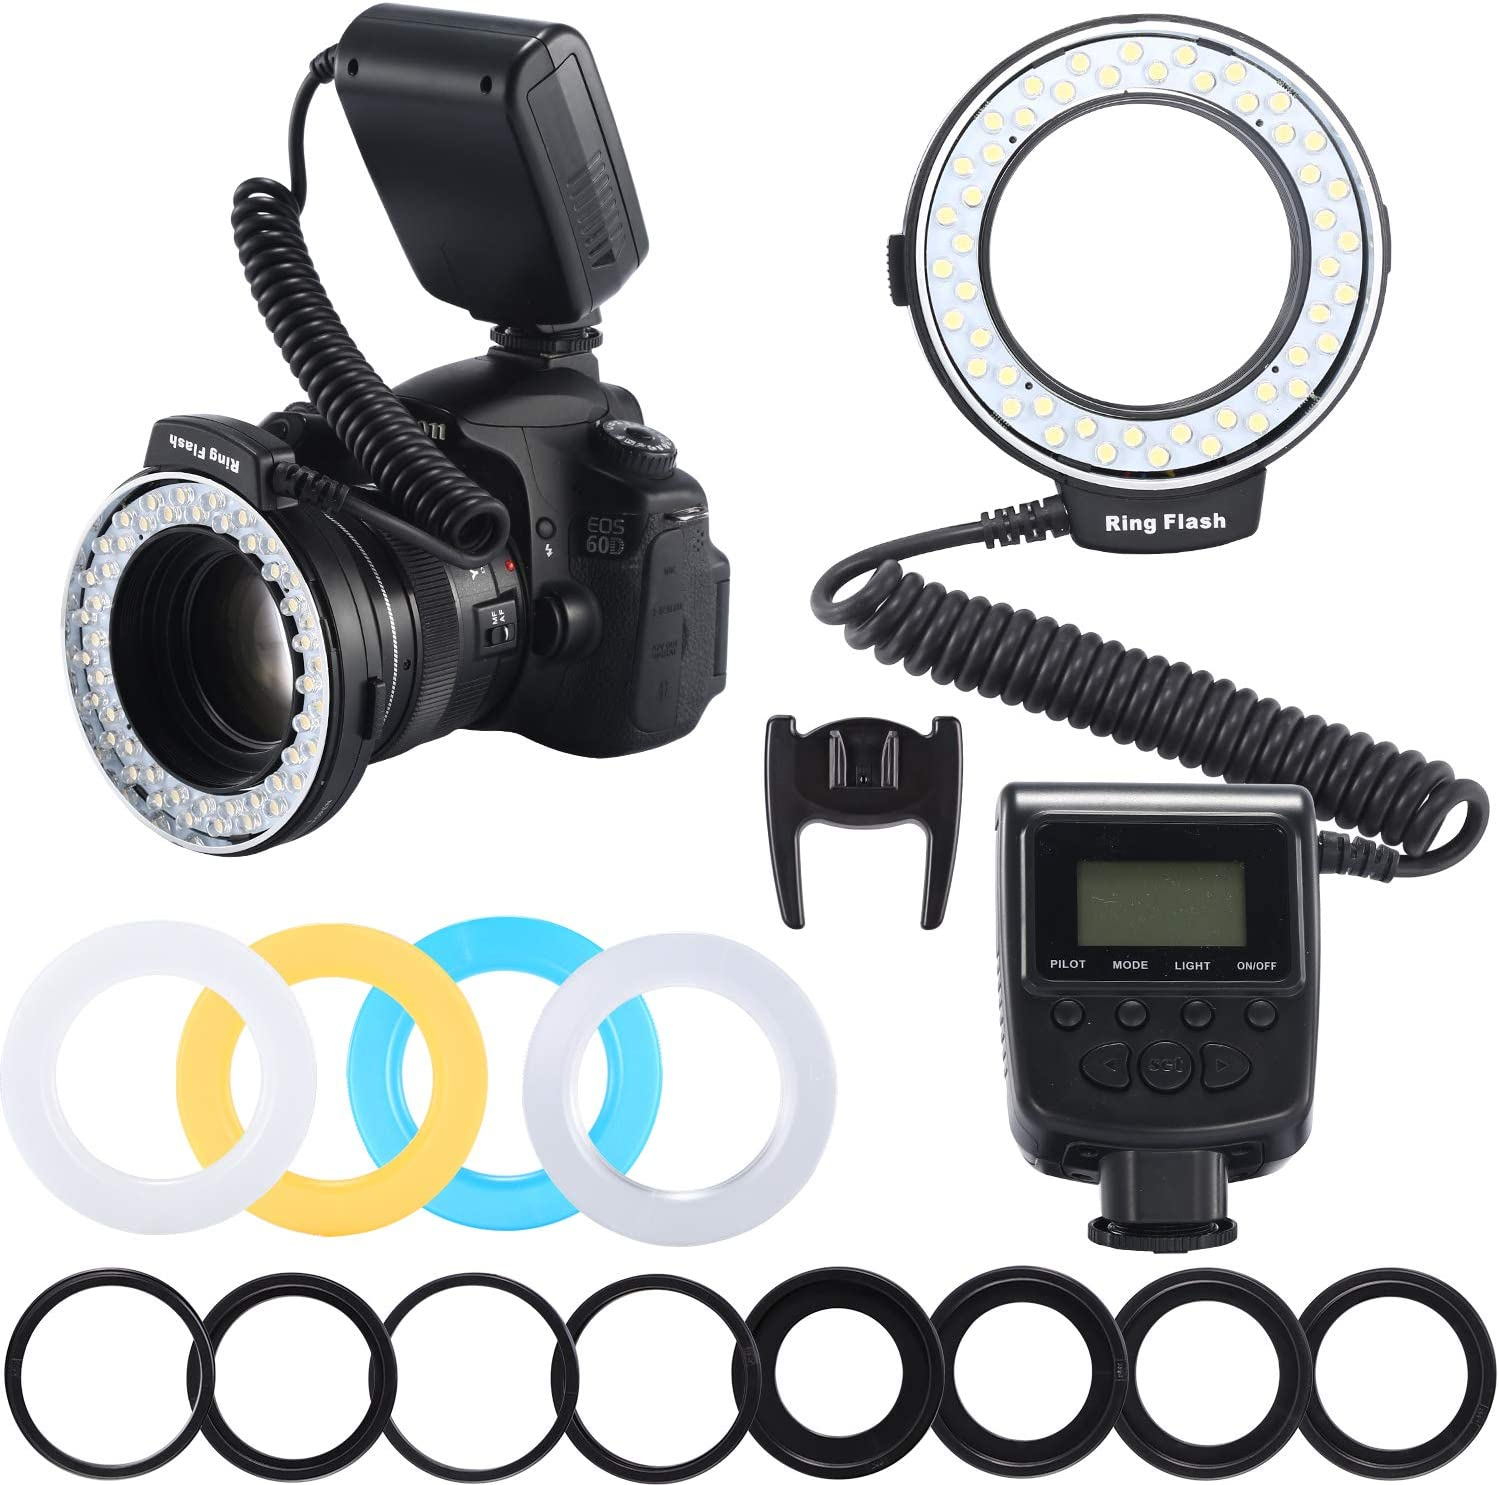 Emiral Macro LED Ring Flash Kit with LCD Display Power Control, Adapter Rings and Flash Diffuser for Canon, Nikon DSLR Cameras